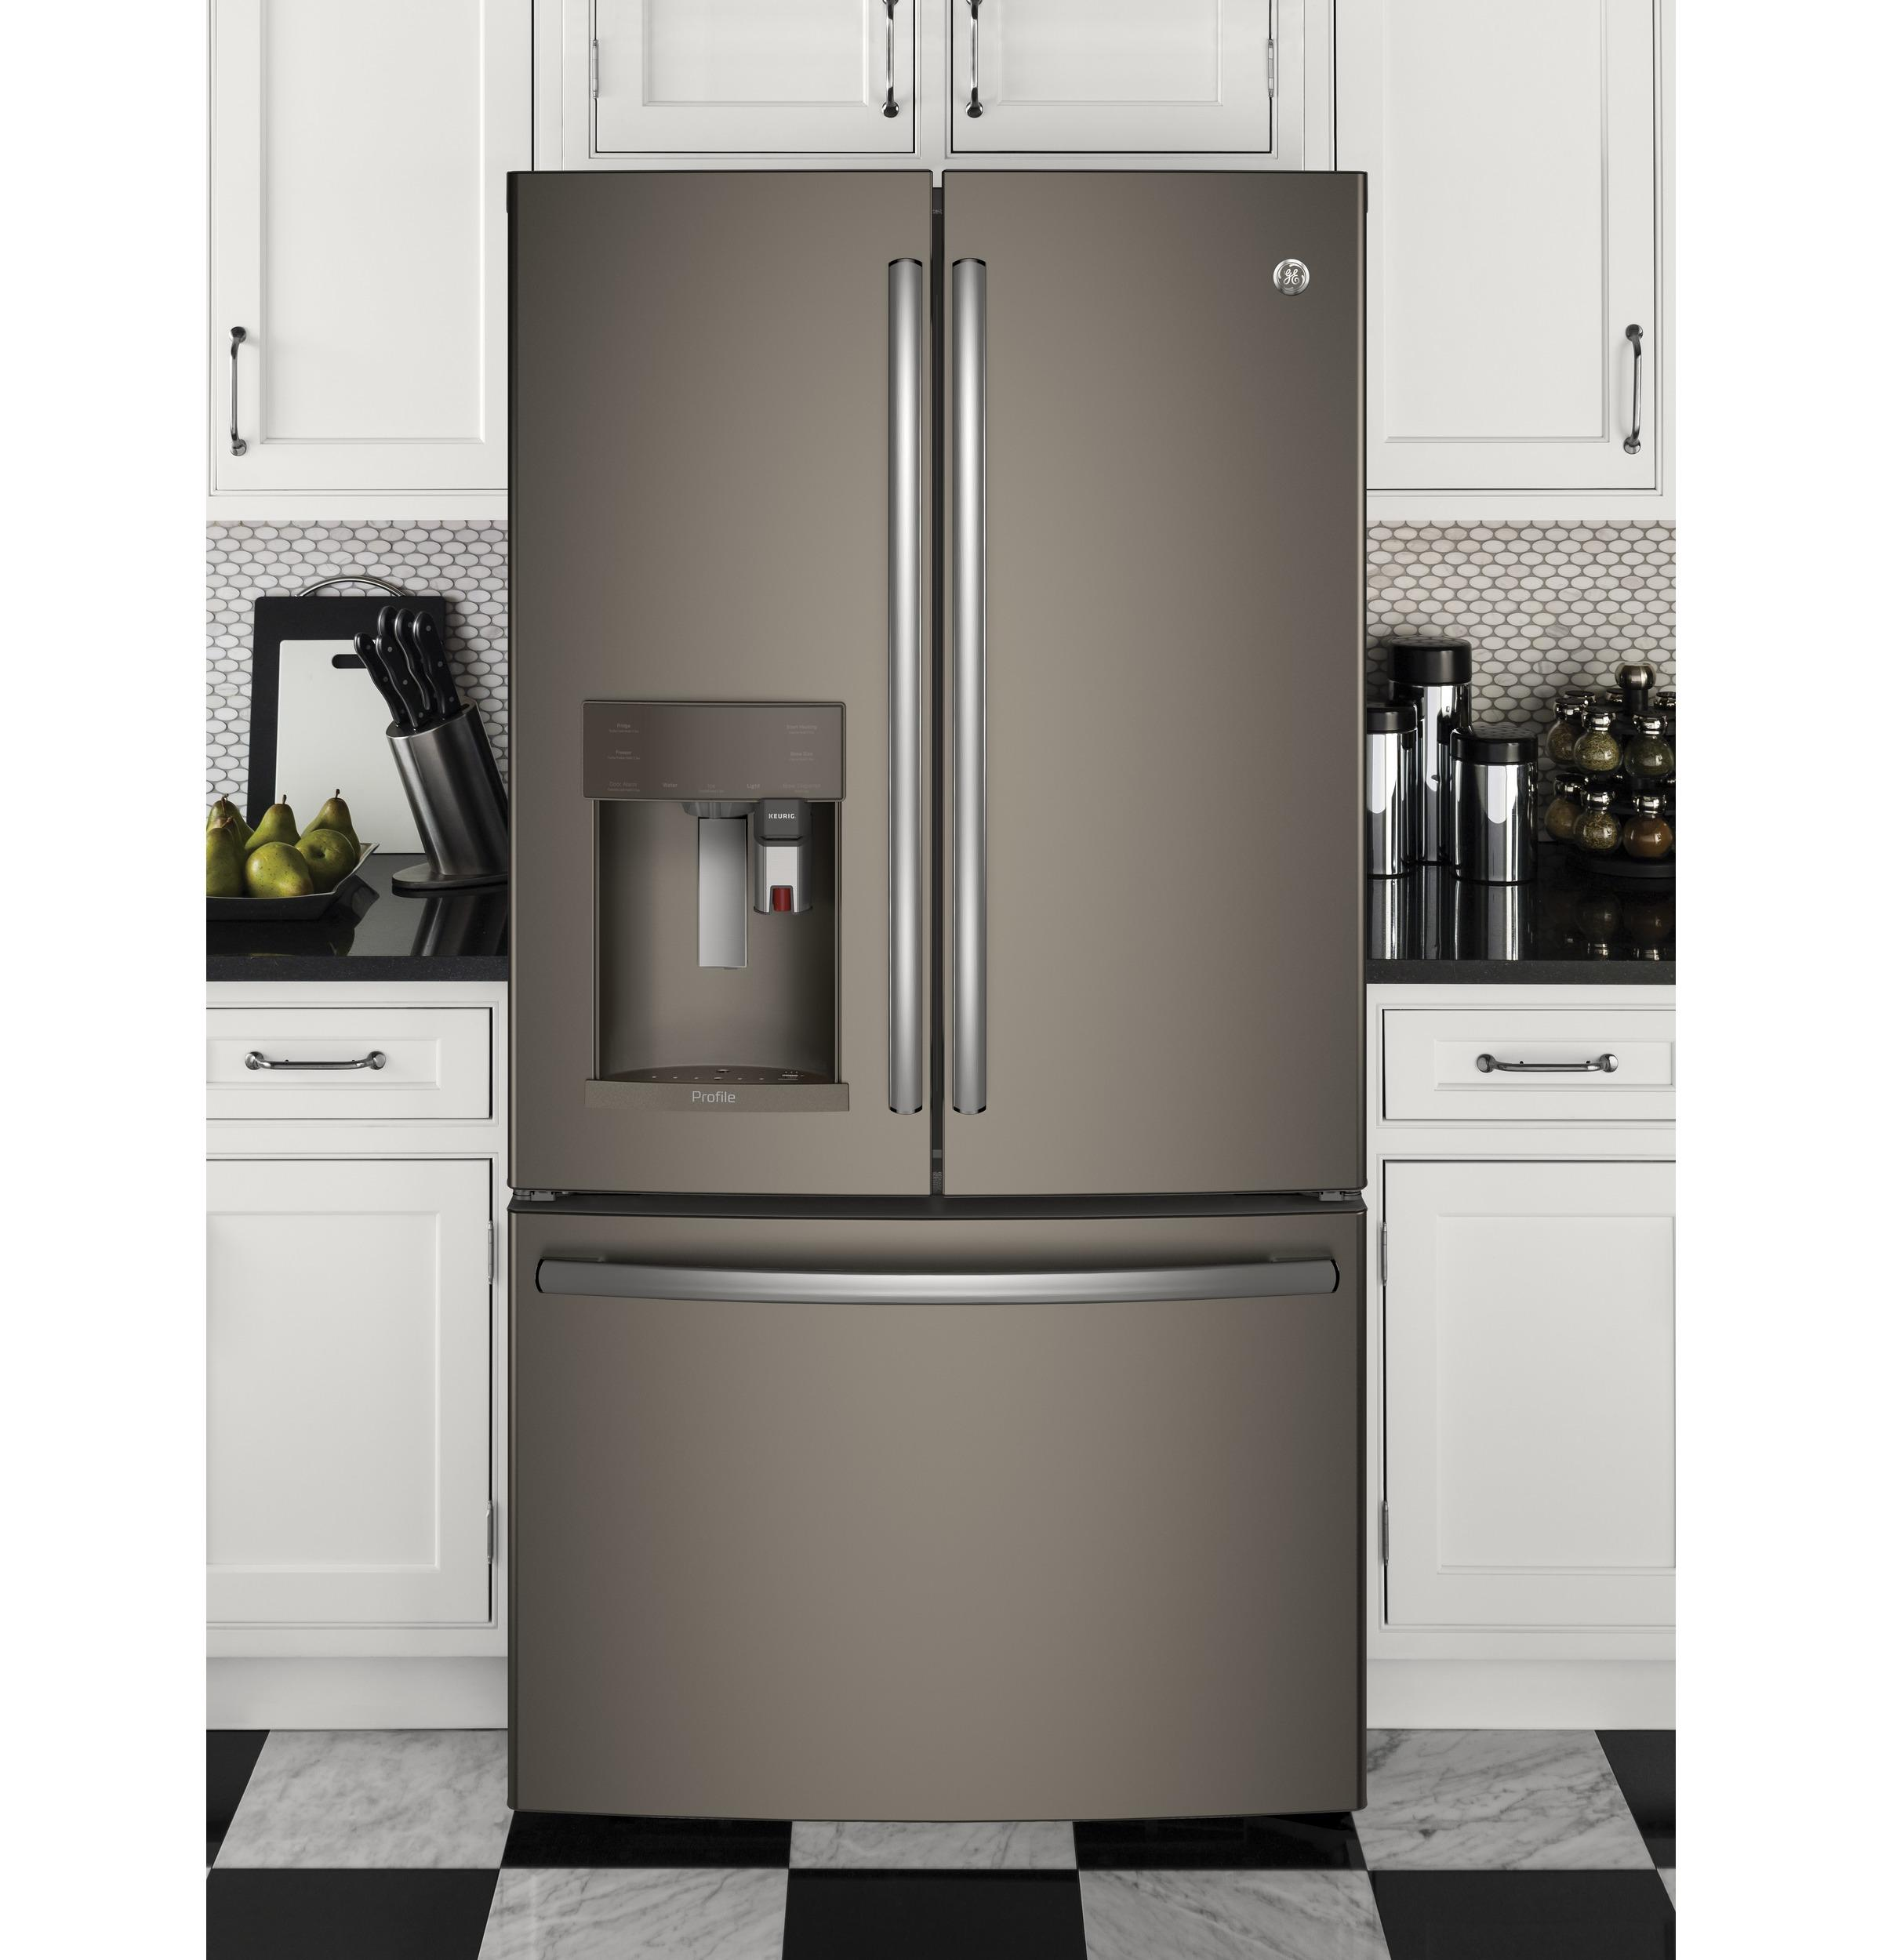 GE Profile™ Series ENERGY STAR® 22.2 Cu. Ft. Counter Depth French